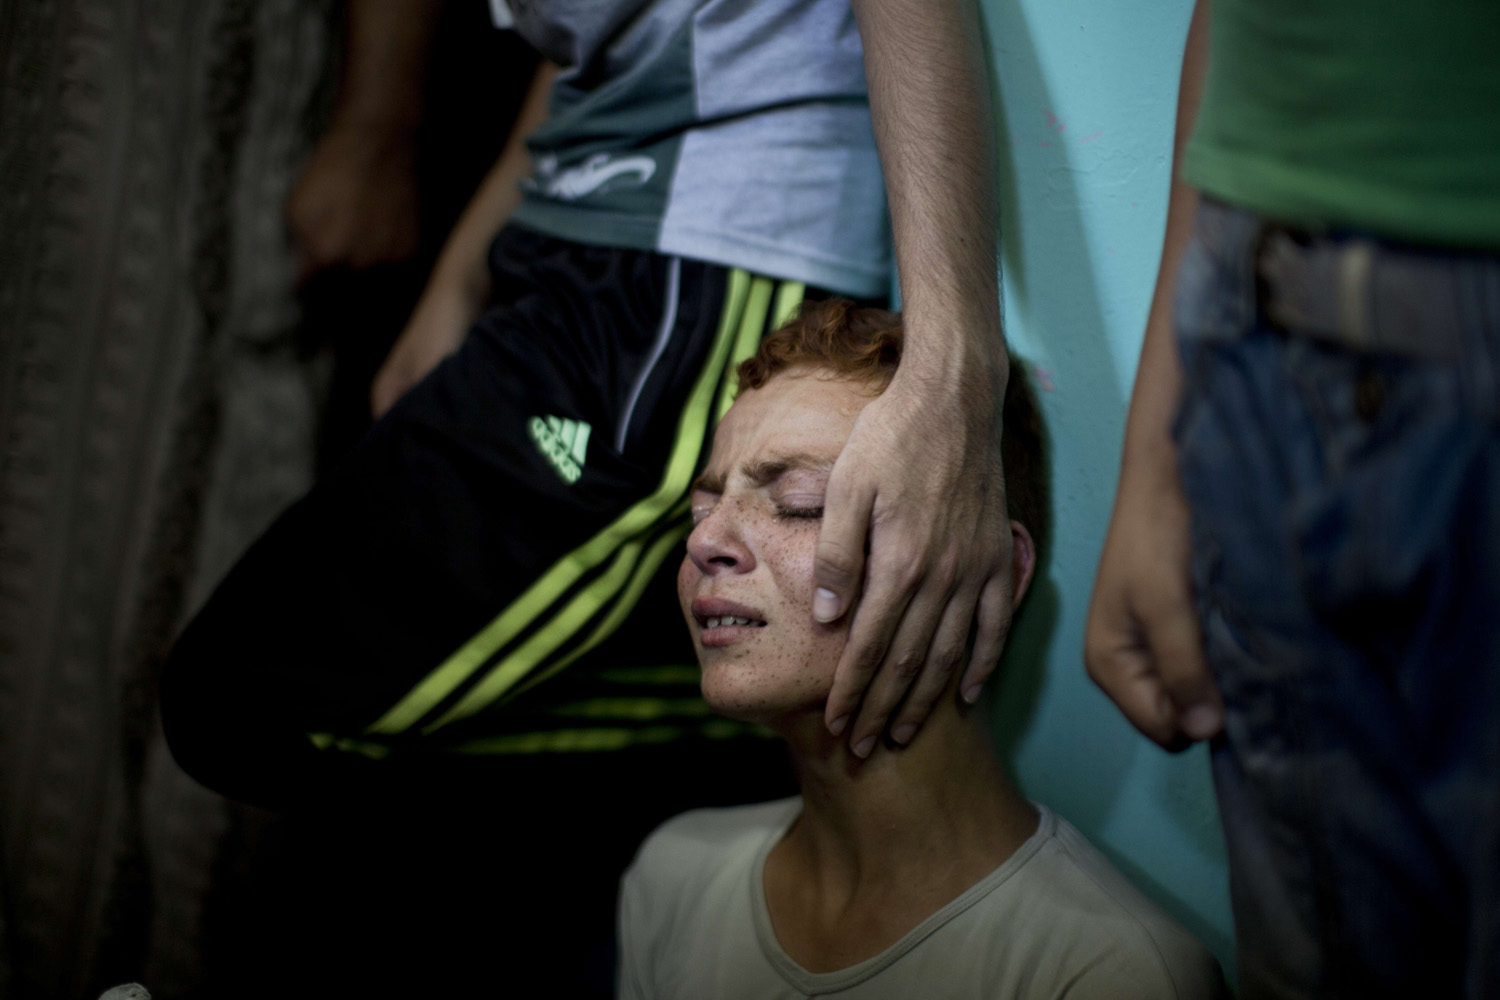 Aug. 21, 2014. A relative of senior Hamas commander Raed al-Atar, one of three senior Hamas commanders killed in an Israeli military strike, mourns during his funeral in the southern Gaza Strip town of Rafah.